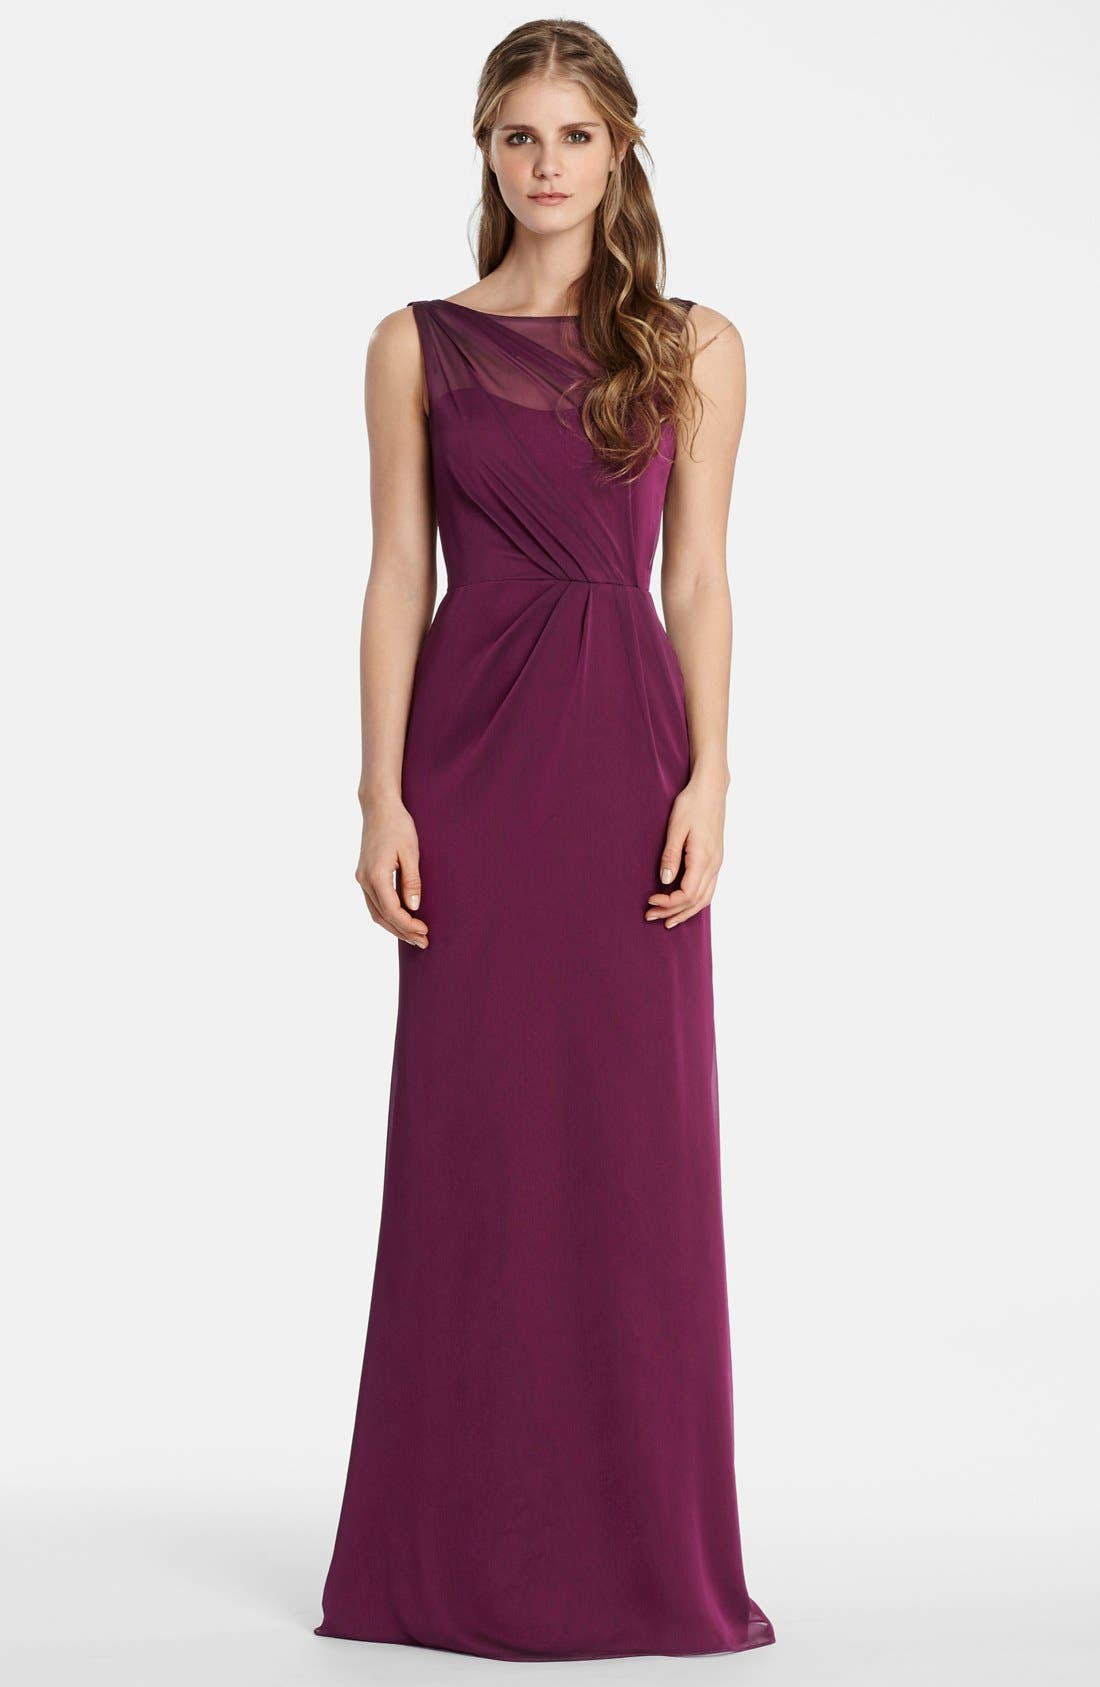 Alternate Image 1 Selected - Jim Hjelm Occasions Drape Back Luminescent Chiffon A-Line Gown